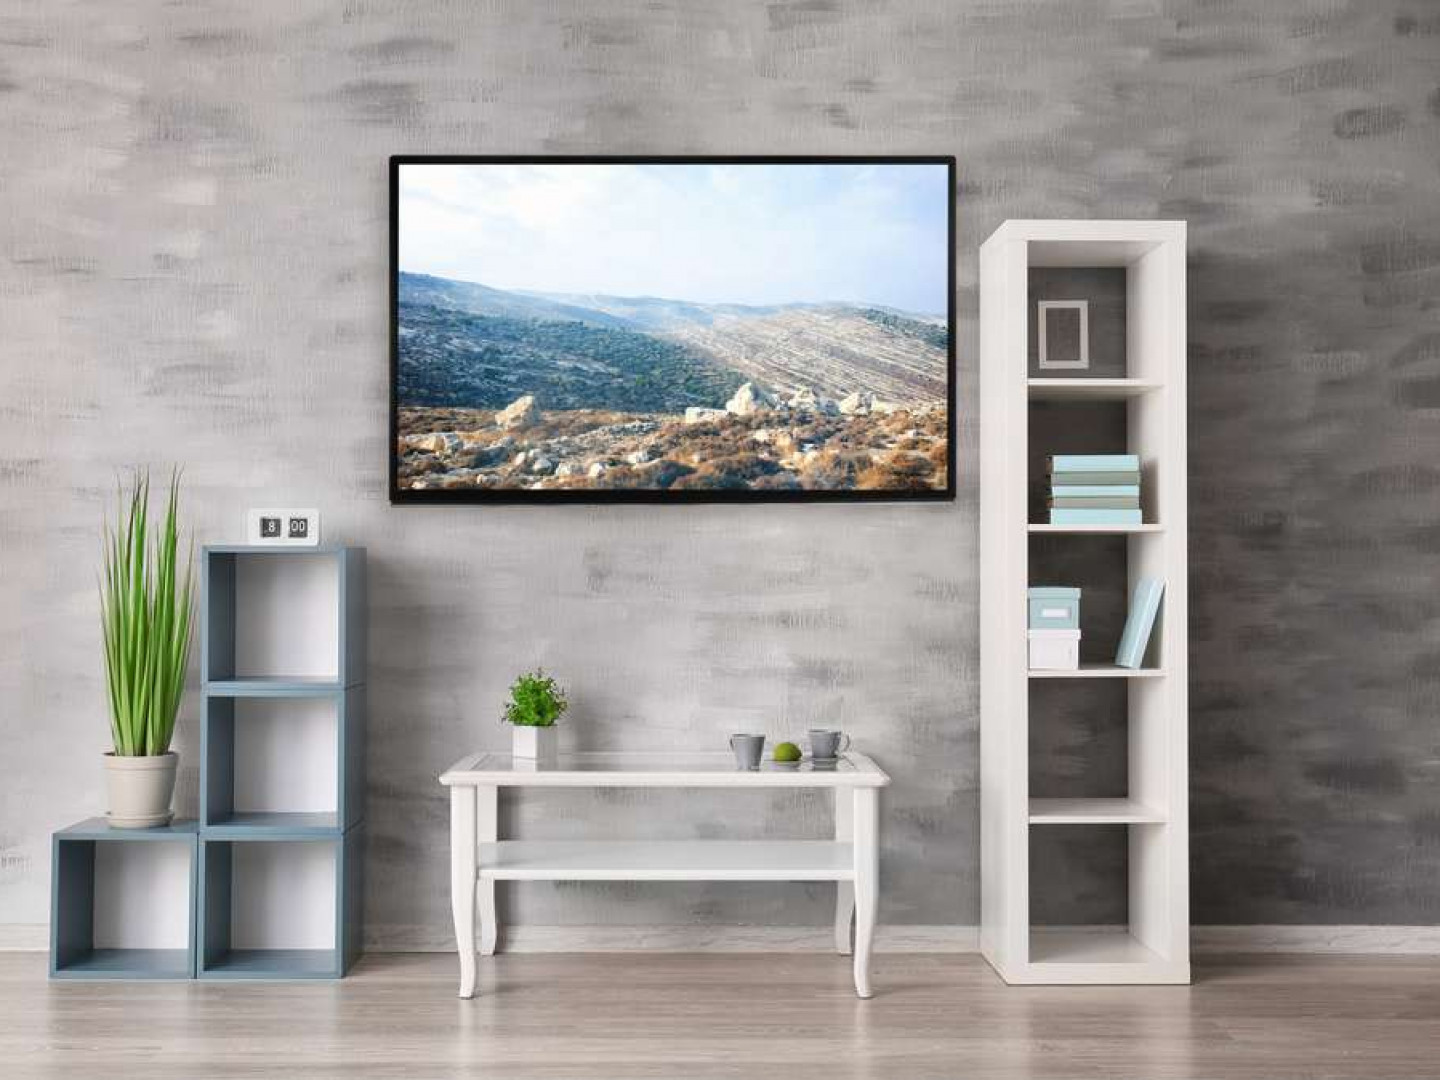 How to Wall Mount 65 Inch TV/Best Wall Mounts for Samsung TV